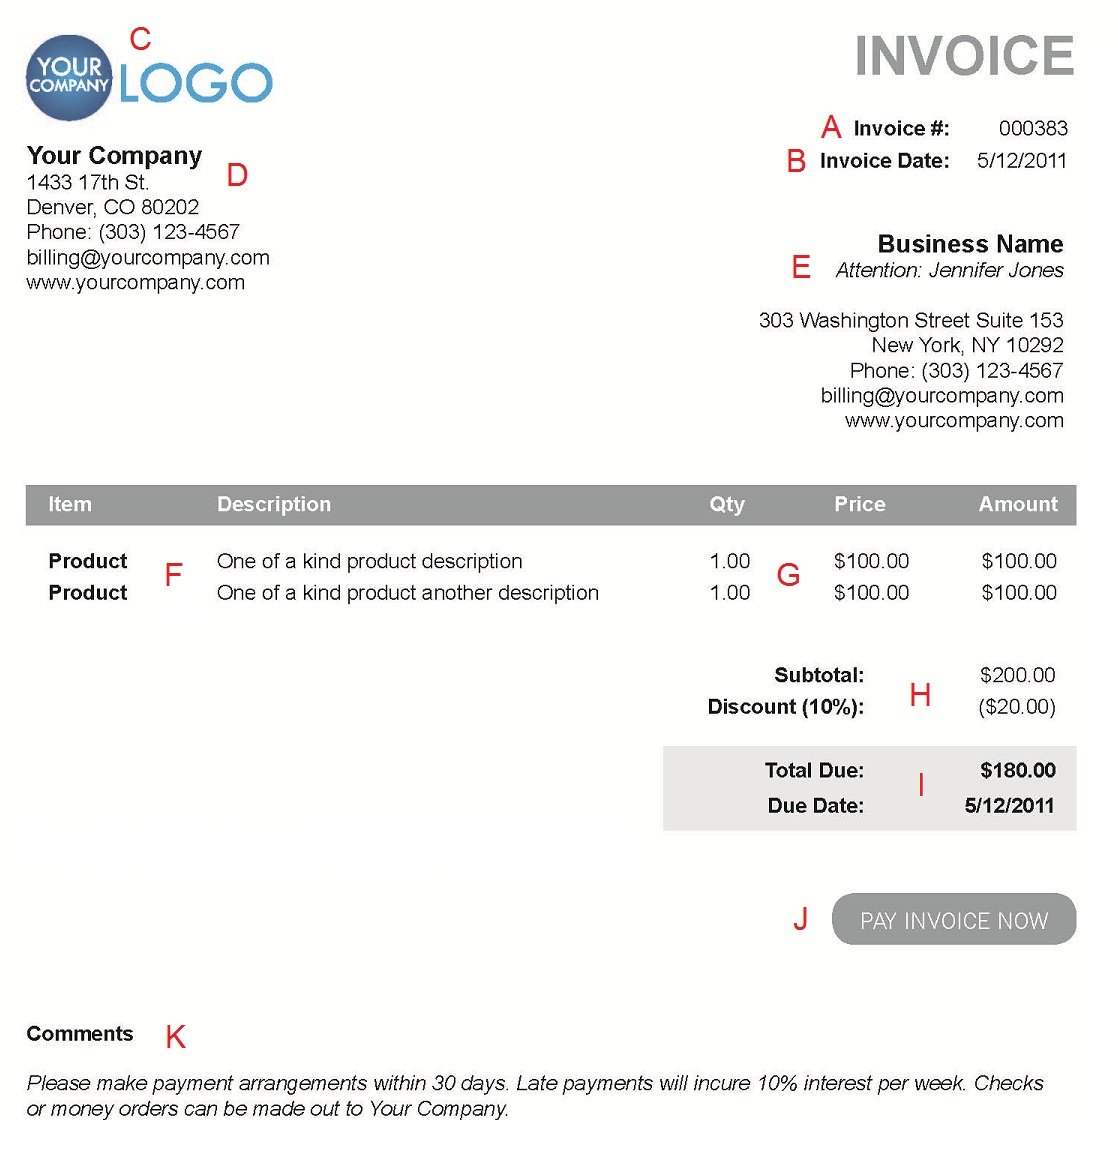 Atvingus  Outstanding The  Different Sections Of An Electronic Payment Invoice With Engaging A  With Amusing Track Invoice Also Ncr Invoices In Addition Lexus Rx  Invoice Price And How To Make An Invoice In Google Docs As Well As Invoice Template Consulting Additionally Ms Word Invoice From Paysimplecom With Atvingus  Engaging The  Different Sections Of An Electronic Payment Invoice With Amusing A  And Outstanding Track Invoice Also Ncr Invoices In Addition Lexus Rx  Invoice Price From Paysimplecom